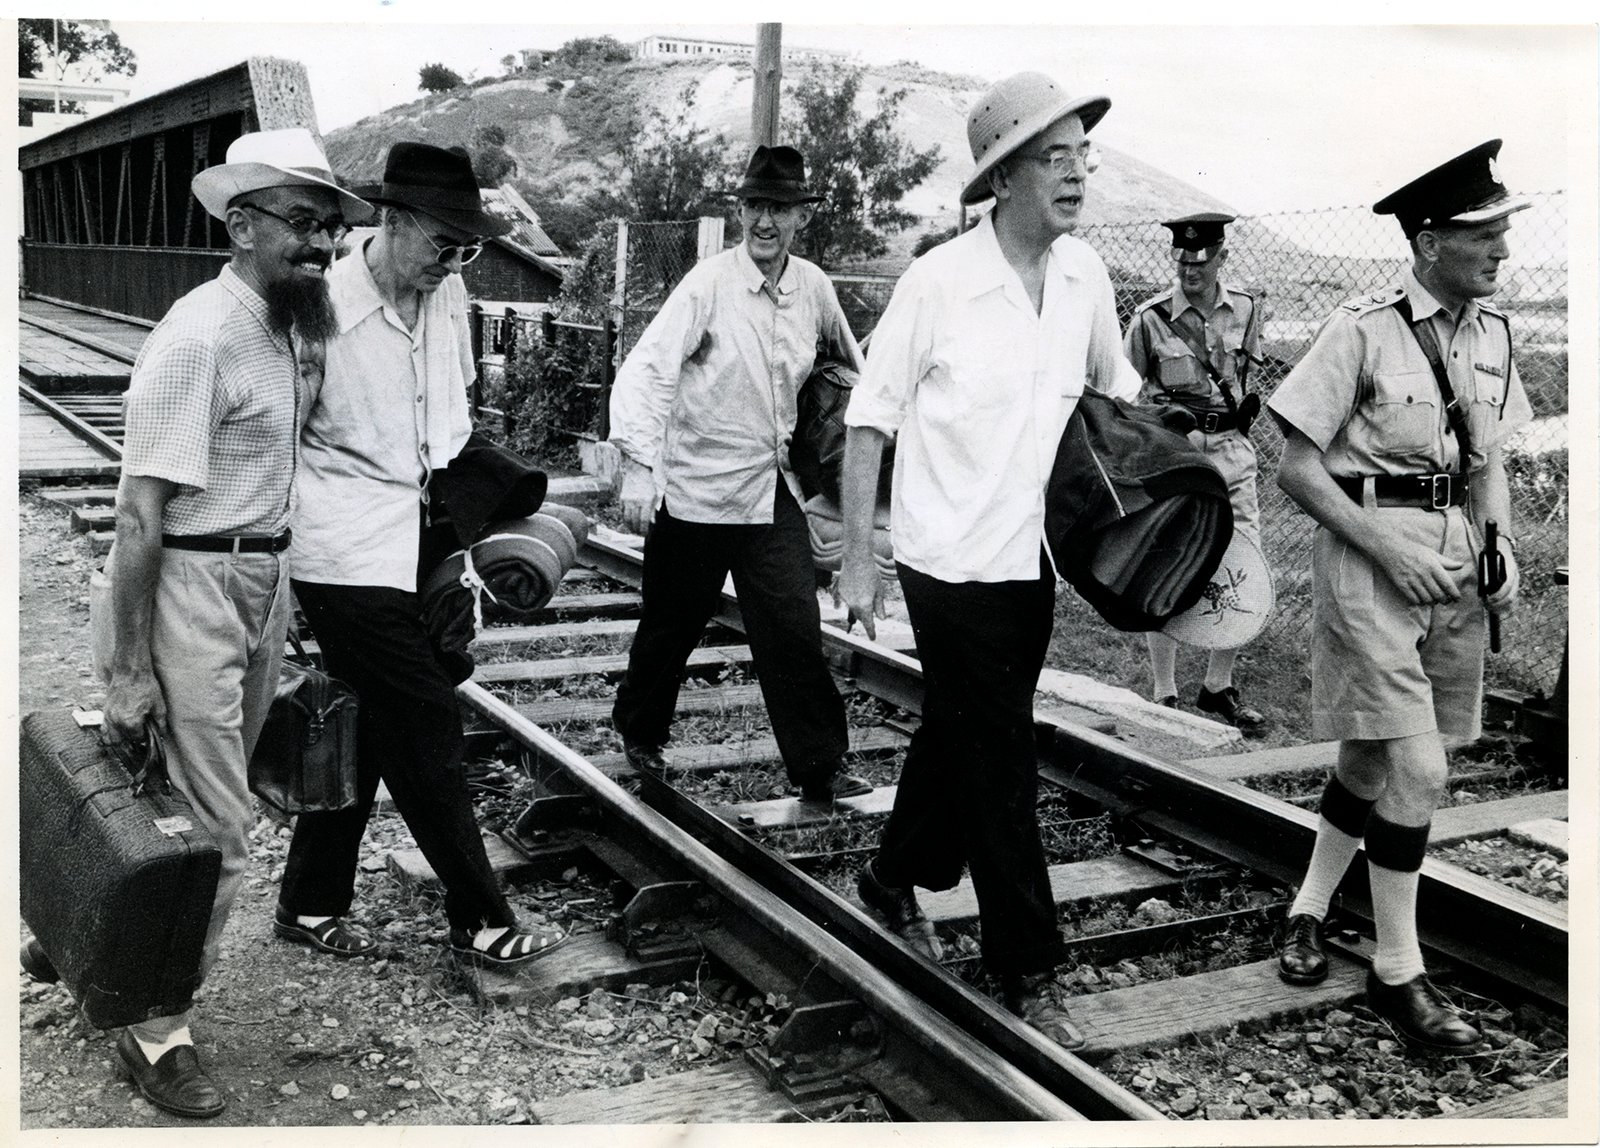 Three American Dominican priests cross Freedom Bridge to Hong Kong from Red China, where they were kept under house arrest in Foochow, Fukien Province, circa 1955. Italian priest father Ambrose Poletti, from left, greeted and escorted fathers Joseph E. Hyde of Lowell, Mass., James G. Joyce of Clinton, Mass., and Frederick A. Gordon. The three were among the first group of American clergymen freed by the communists under the Geneva Agreements. With them on far right is Police Superintendent A. L. Gordon, who was in charge of the British side of border. The trio was pale and had lost weight, but they were in good spirits. RNS archive photo. Photo courtesy of the Presbyterian Historical Society.